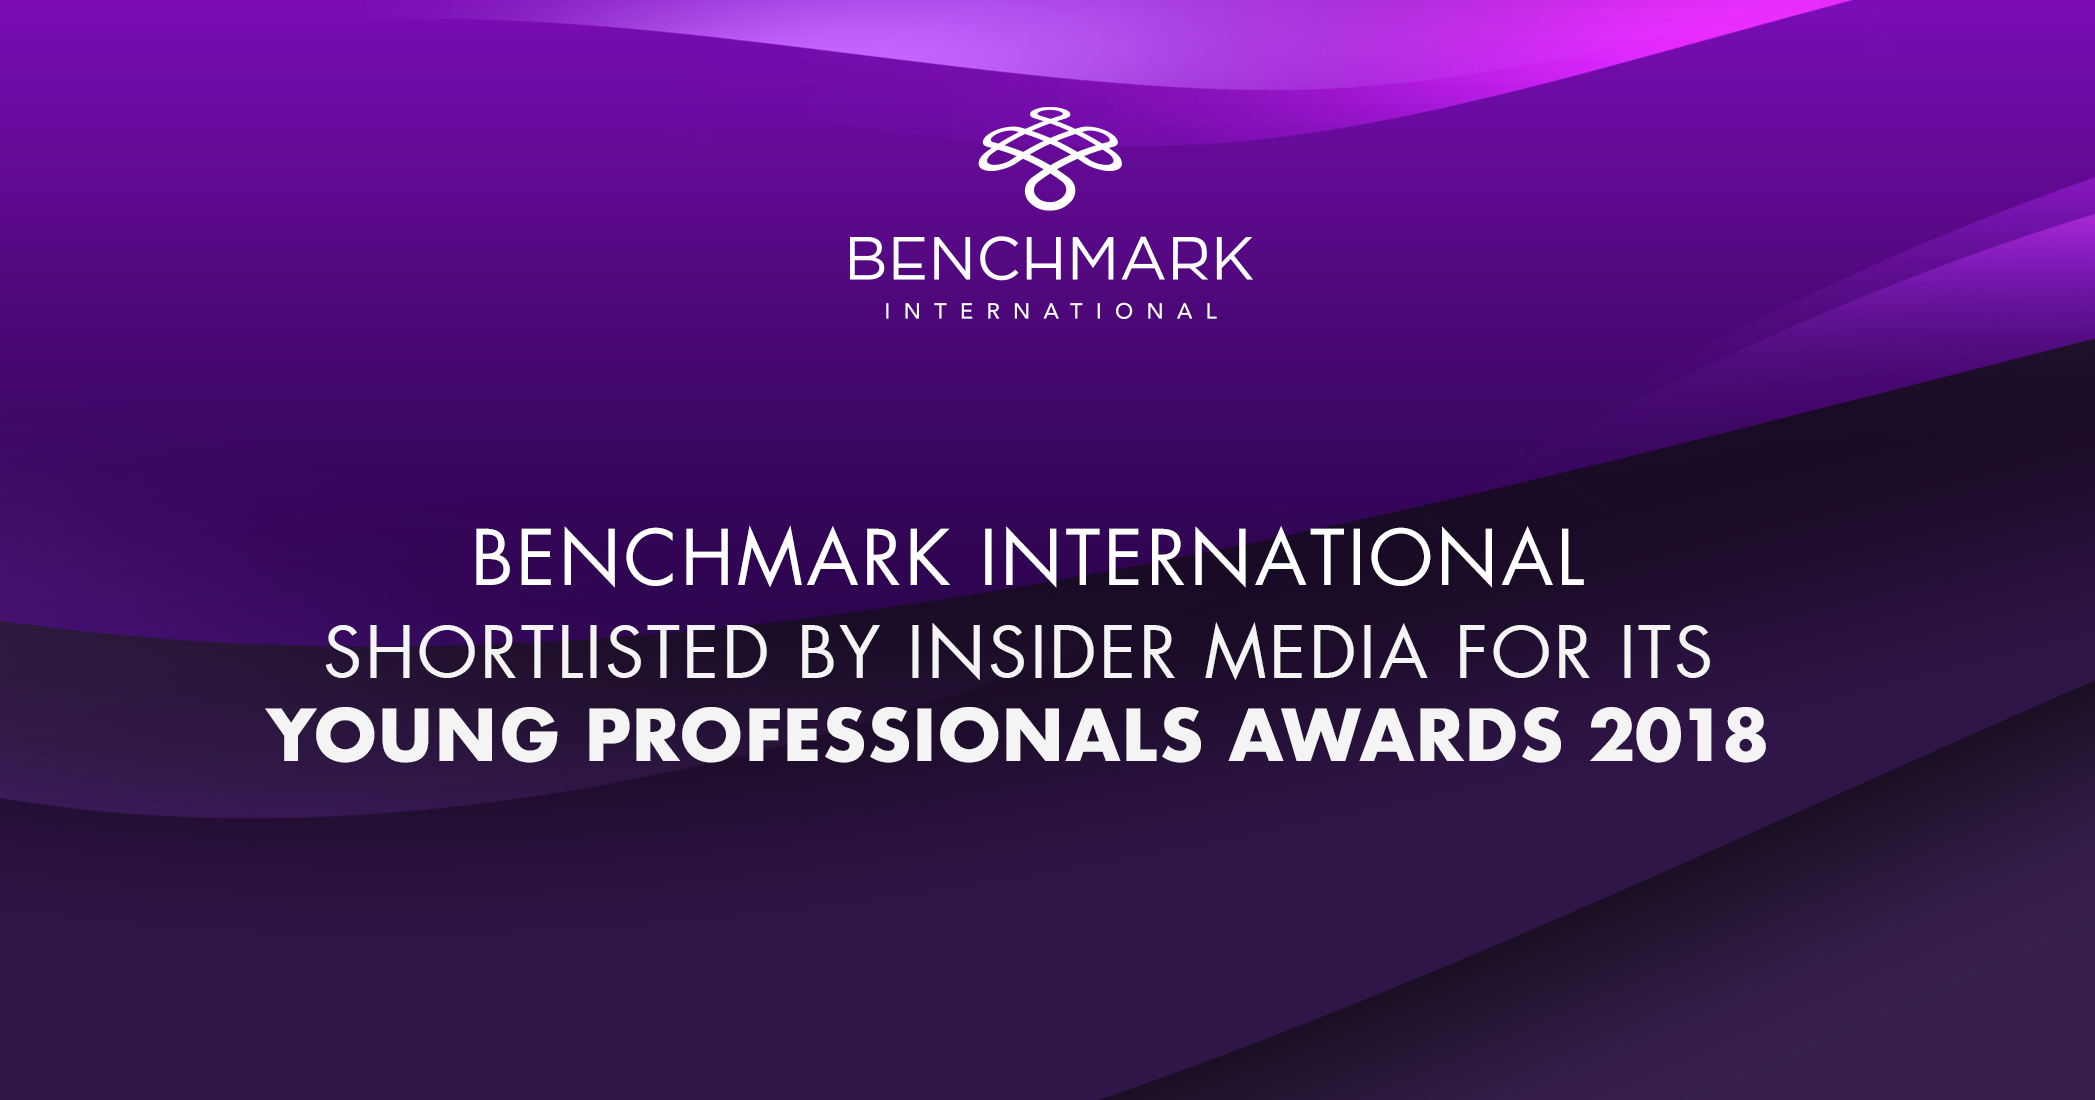 Benchmark International Shortlisted by Insider Media for its Young Professionals Awards 2018